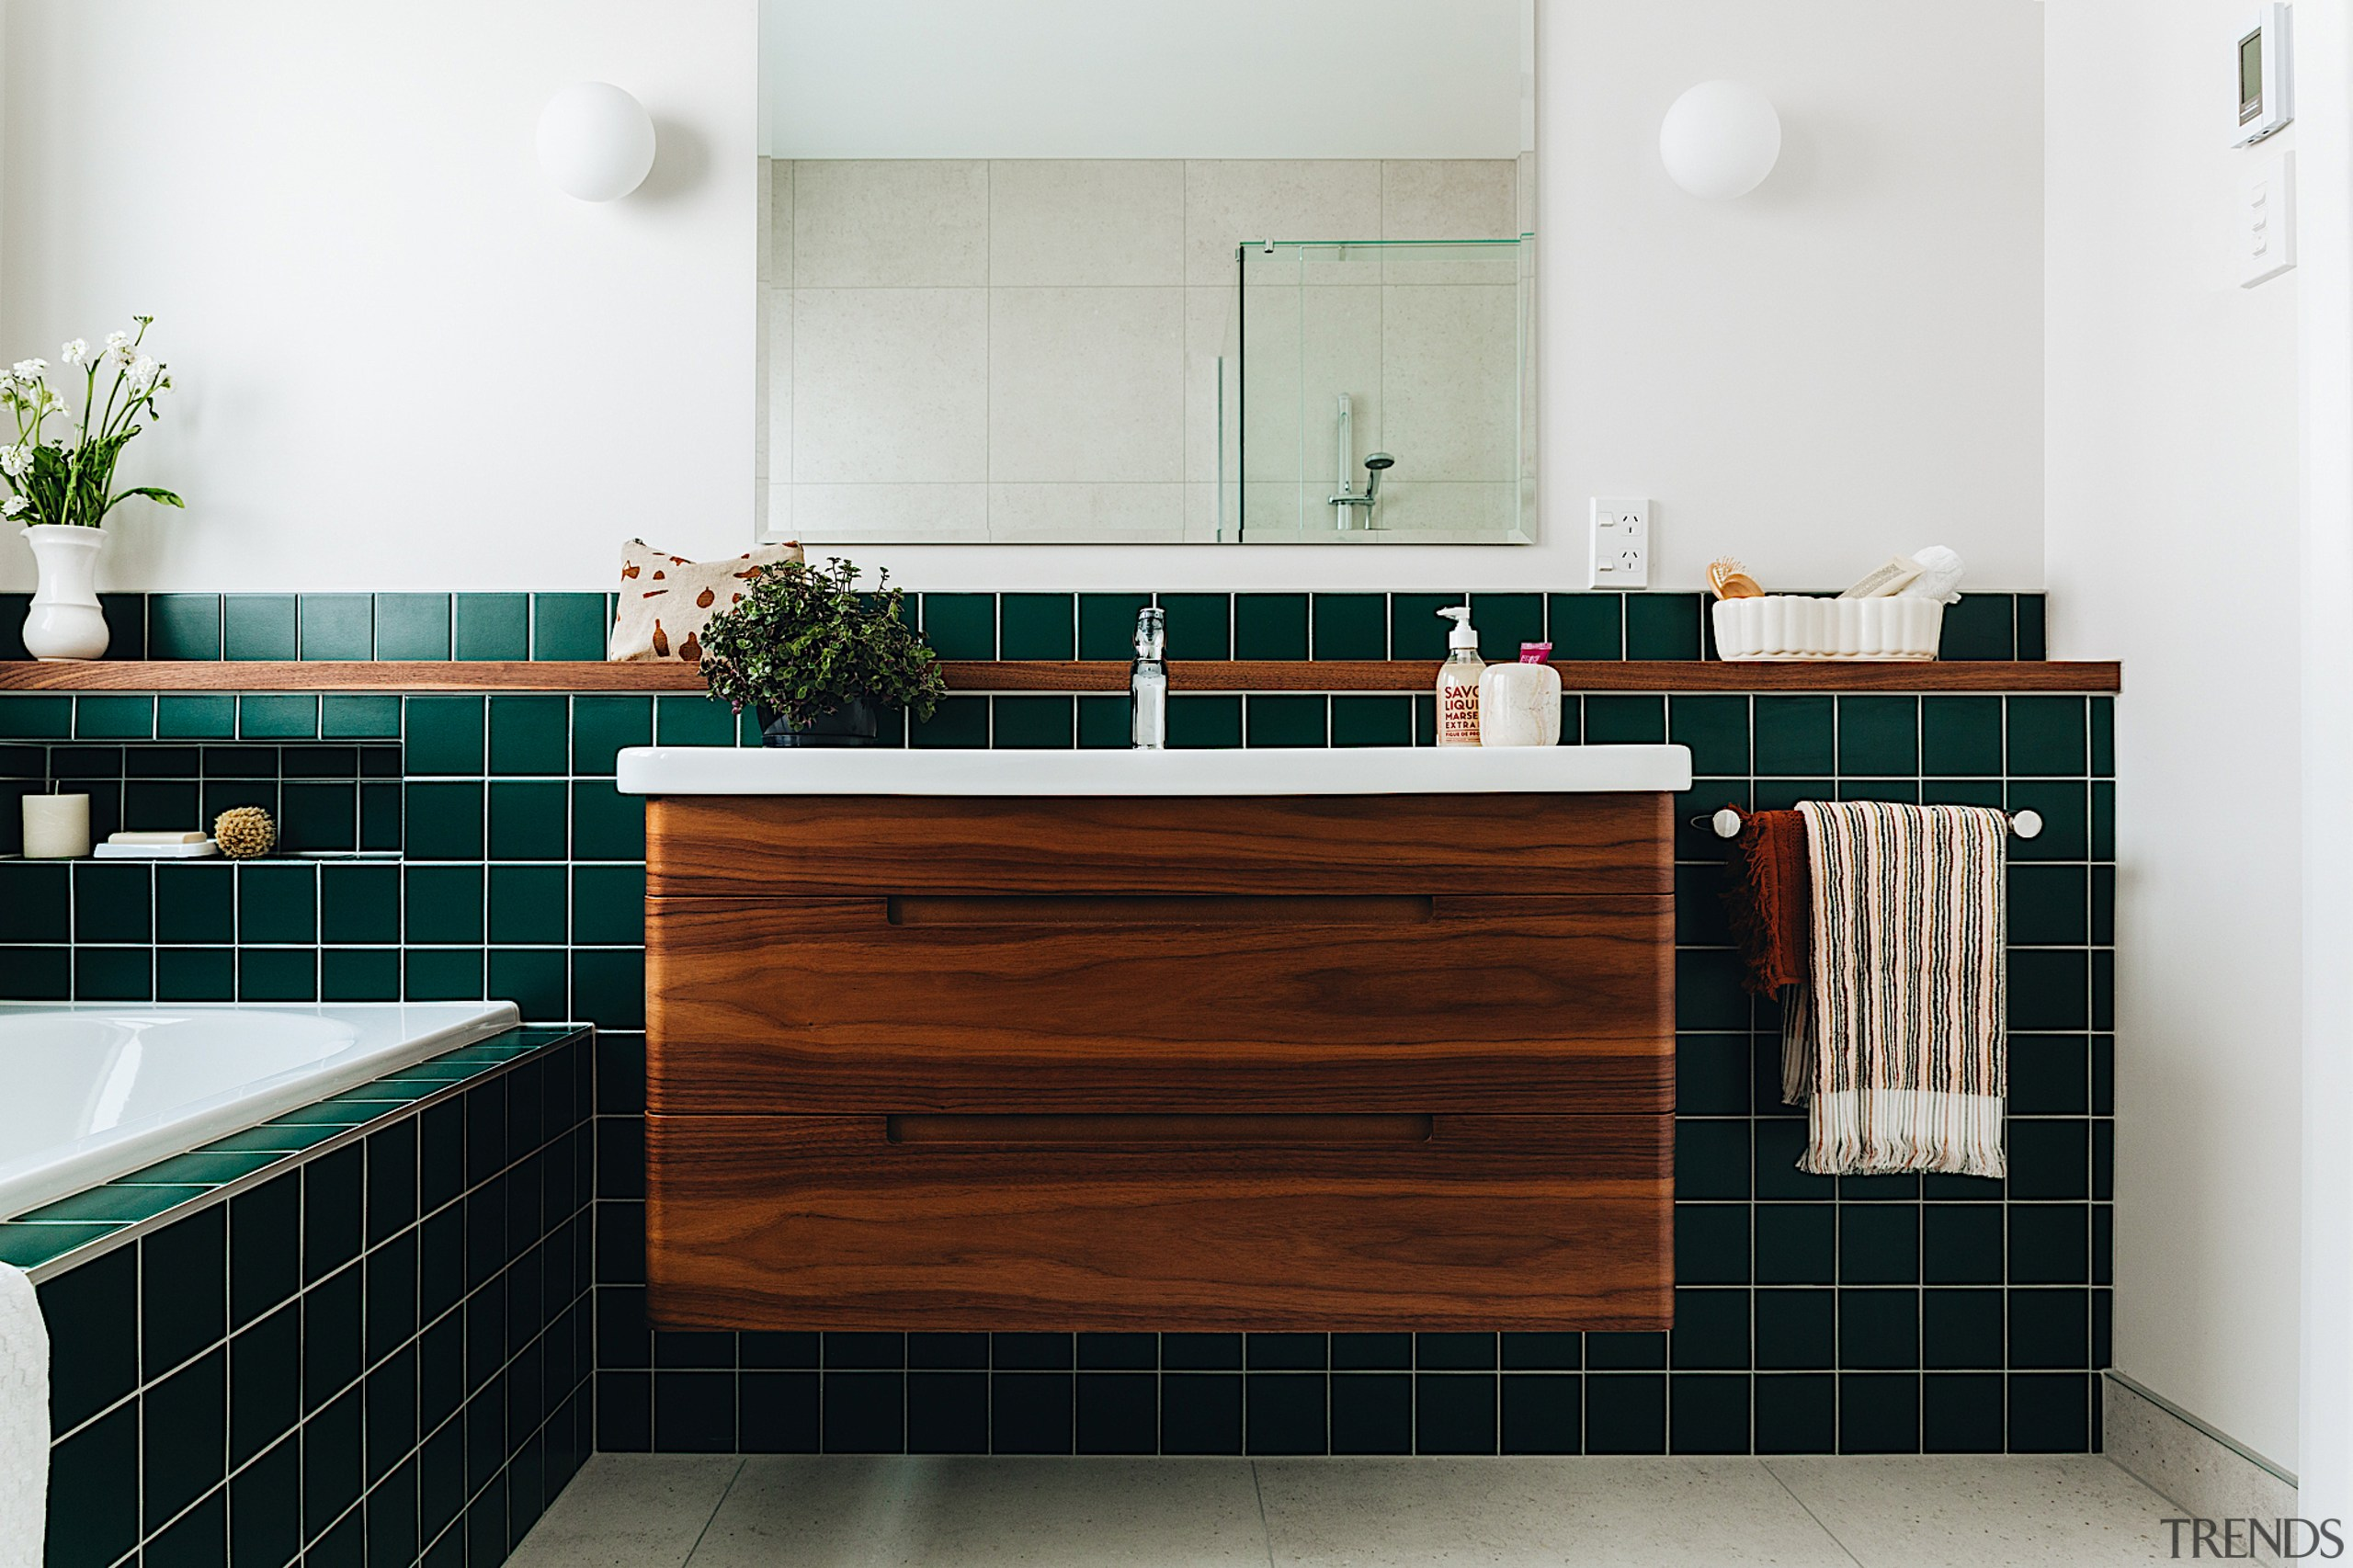 The design objective of this bungalow bathroom renovation